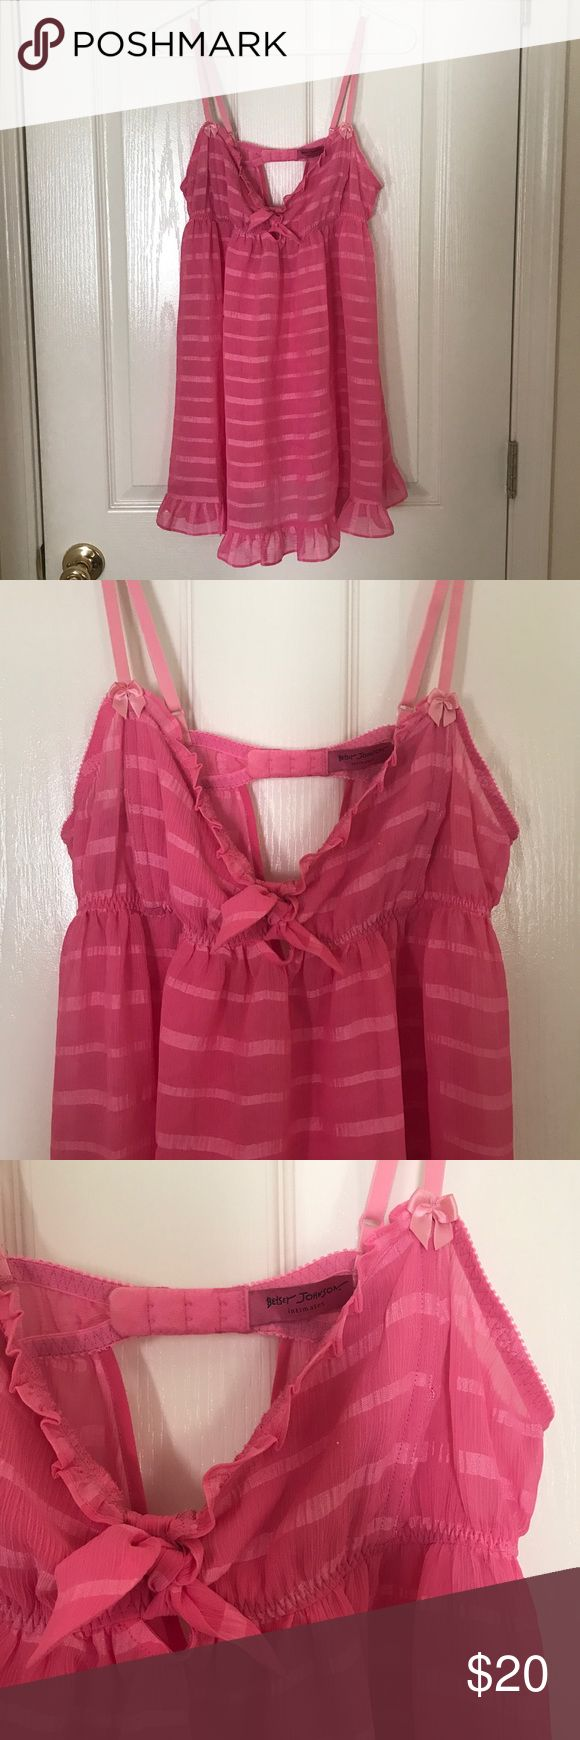 """NWOT Betsey Johnson Sleep Teddy NWOT sweet pink on pink striped Betsey Johnson sleep teddy with adjustable straps and bow details. 24.5"""" from front top bows to bottom hem. Cute small open back detail. Make an offer or bundle for discount! Betsey Johnson Intimates & Sleepwear Chemises & Slips"""